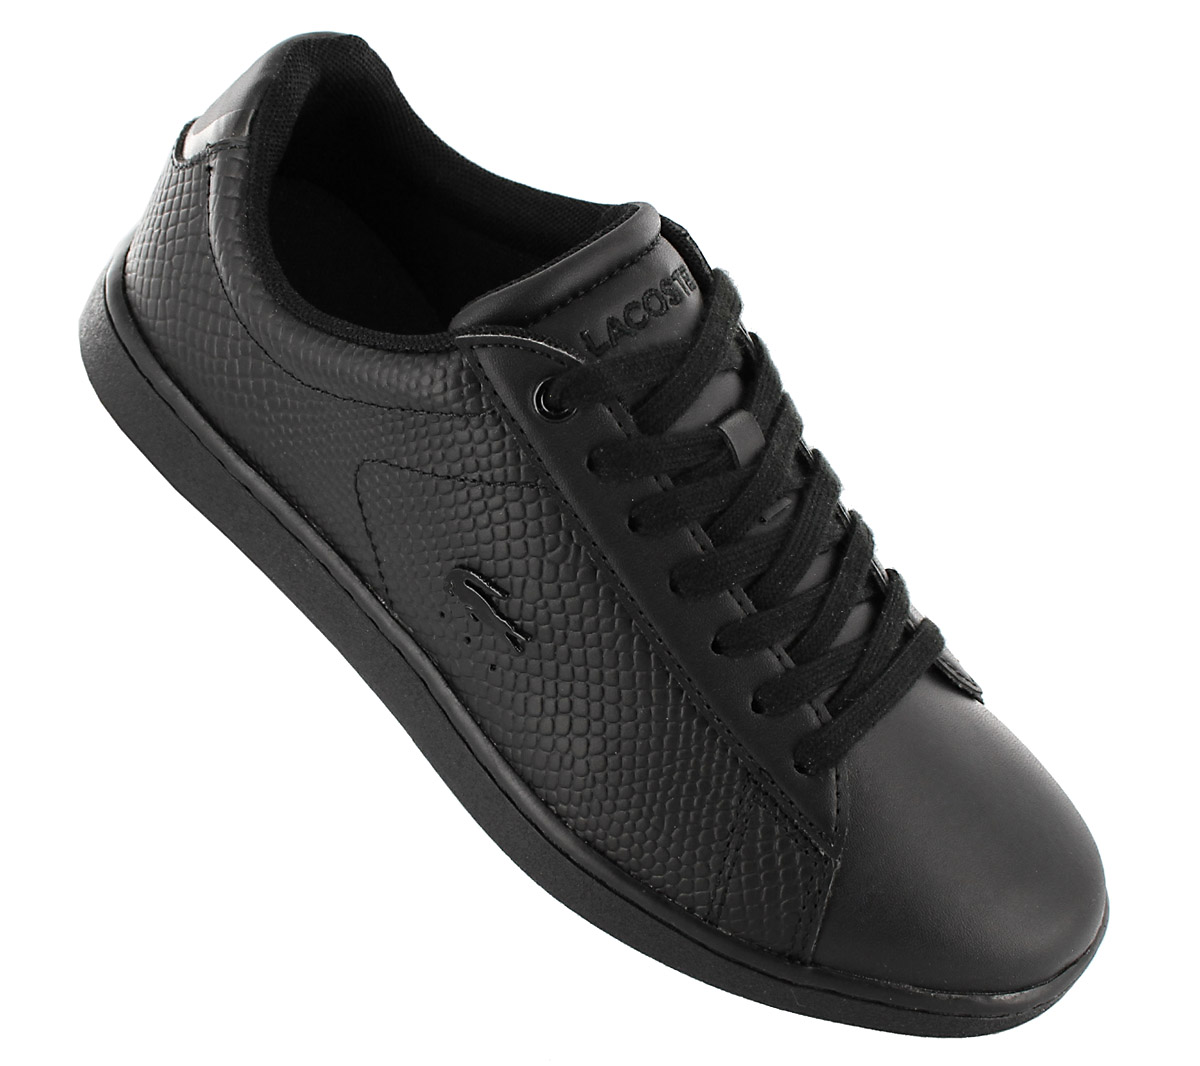 a5f5fb1ddc81c0 Lacoste Carnaby Evo 317 3 Spw Loisirs de Chaussures Dames Sneaker ...